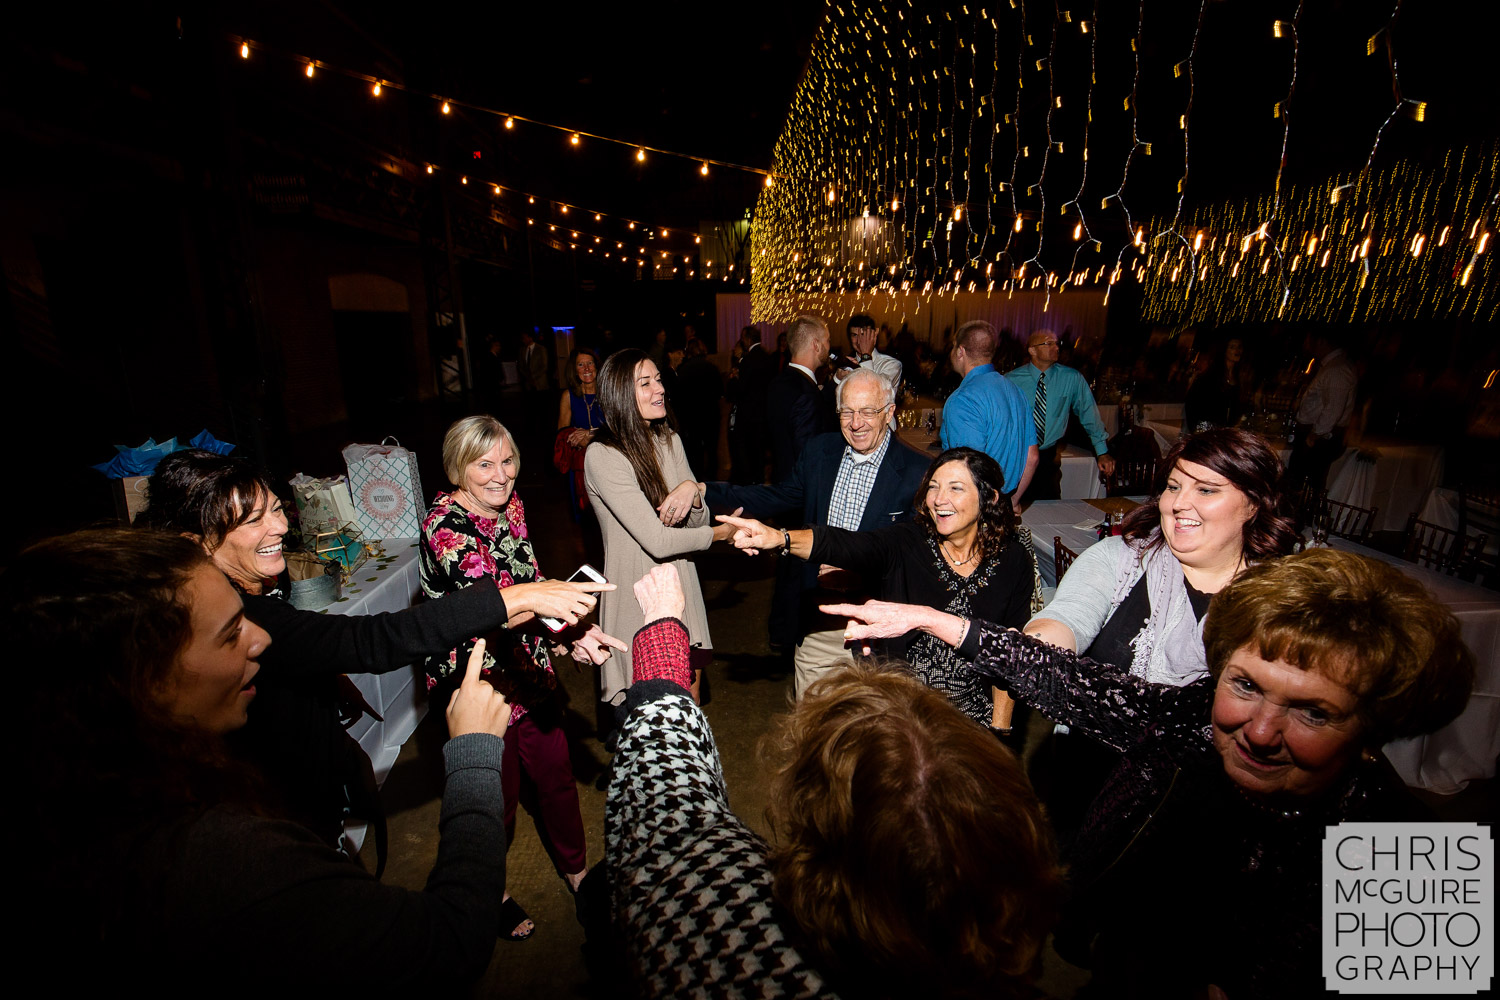 Dancing at Illinois State Fairgrounds Wedding Reception